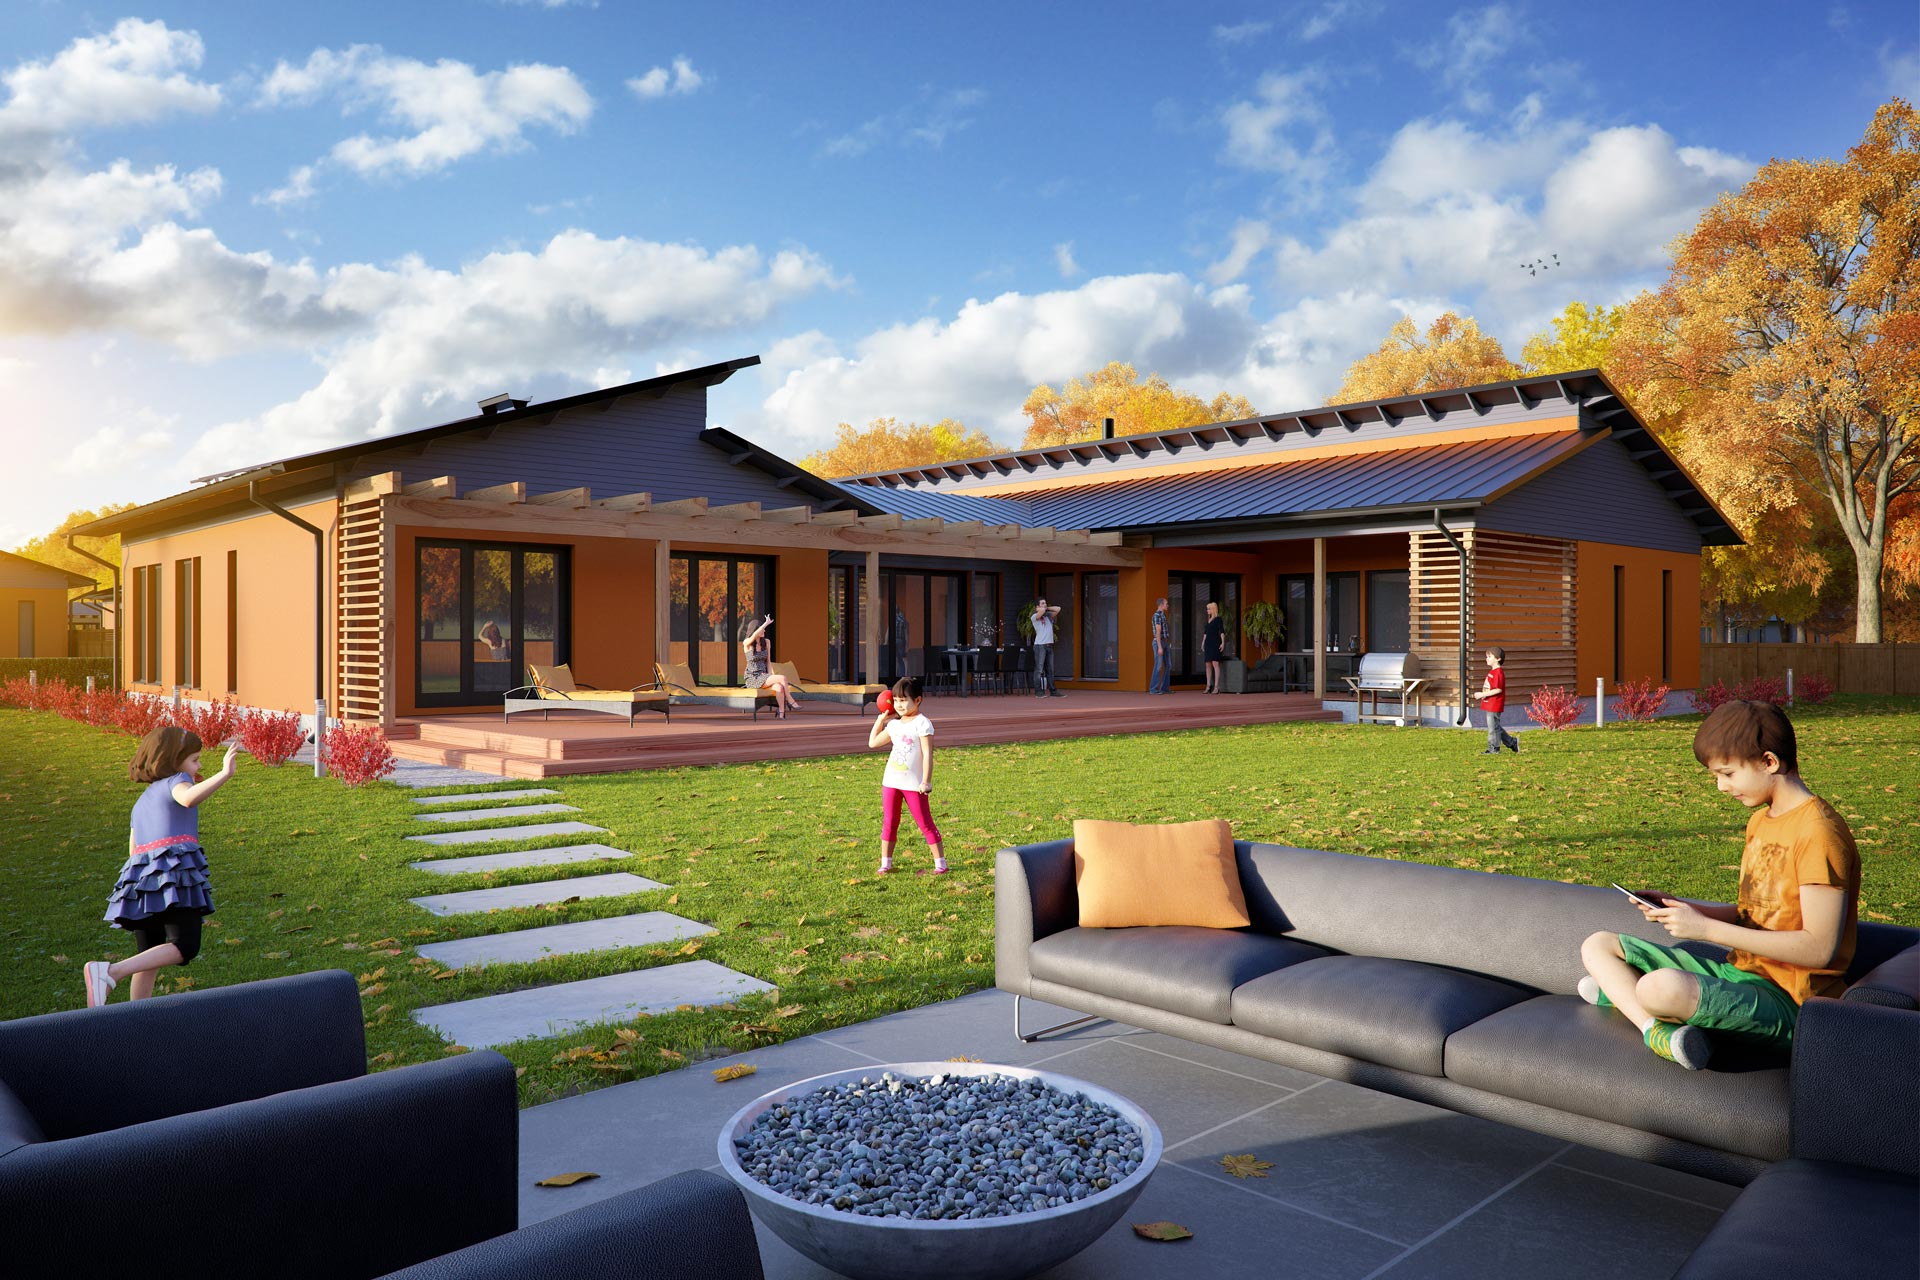 Better quality 3D visualization of your property